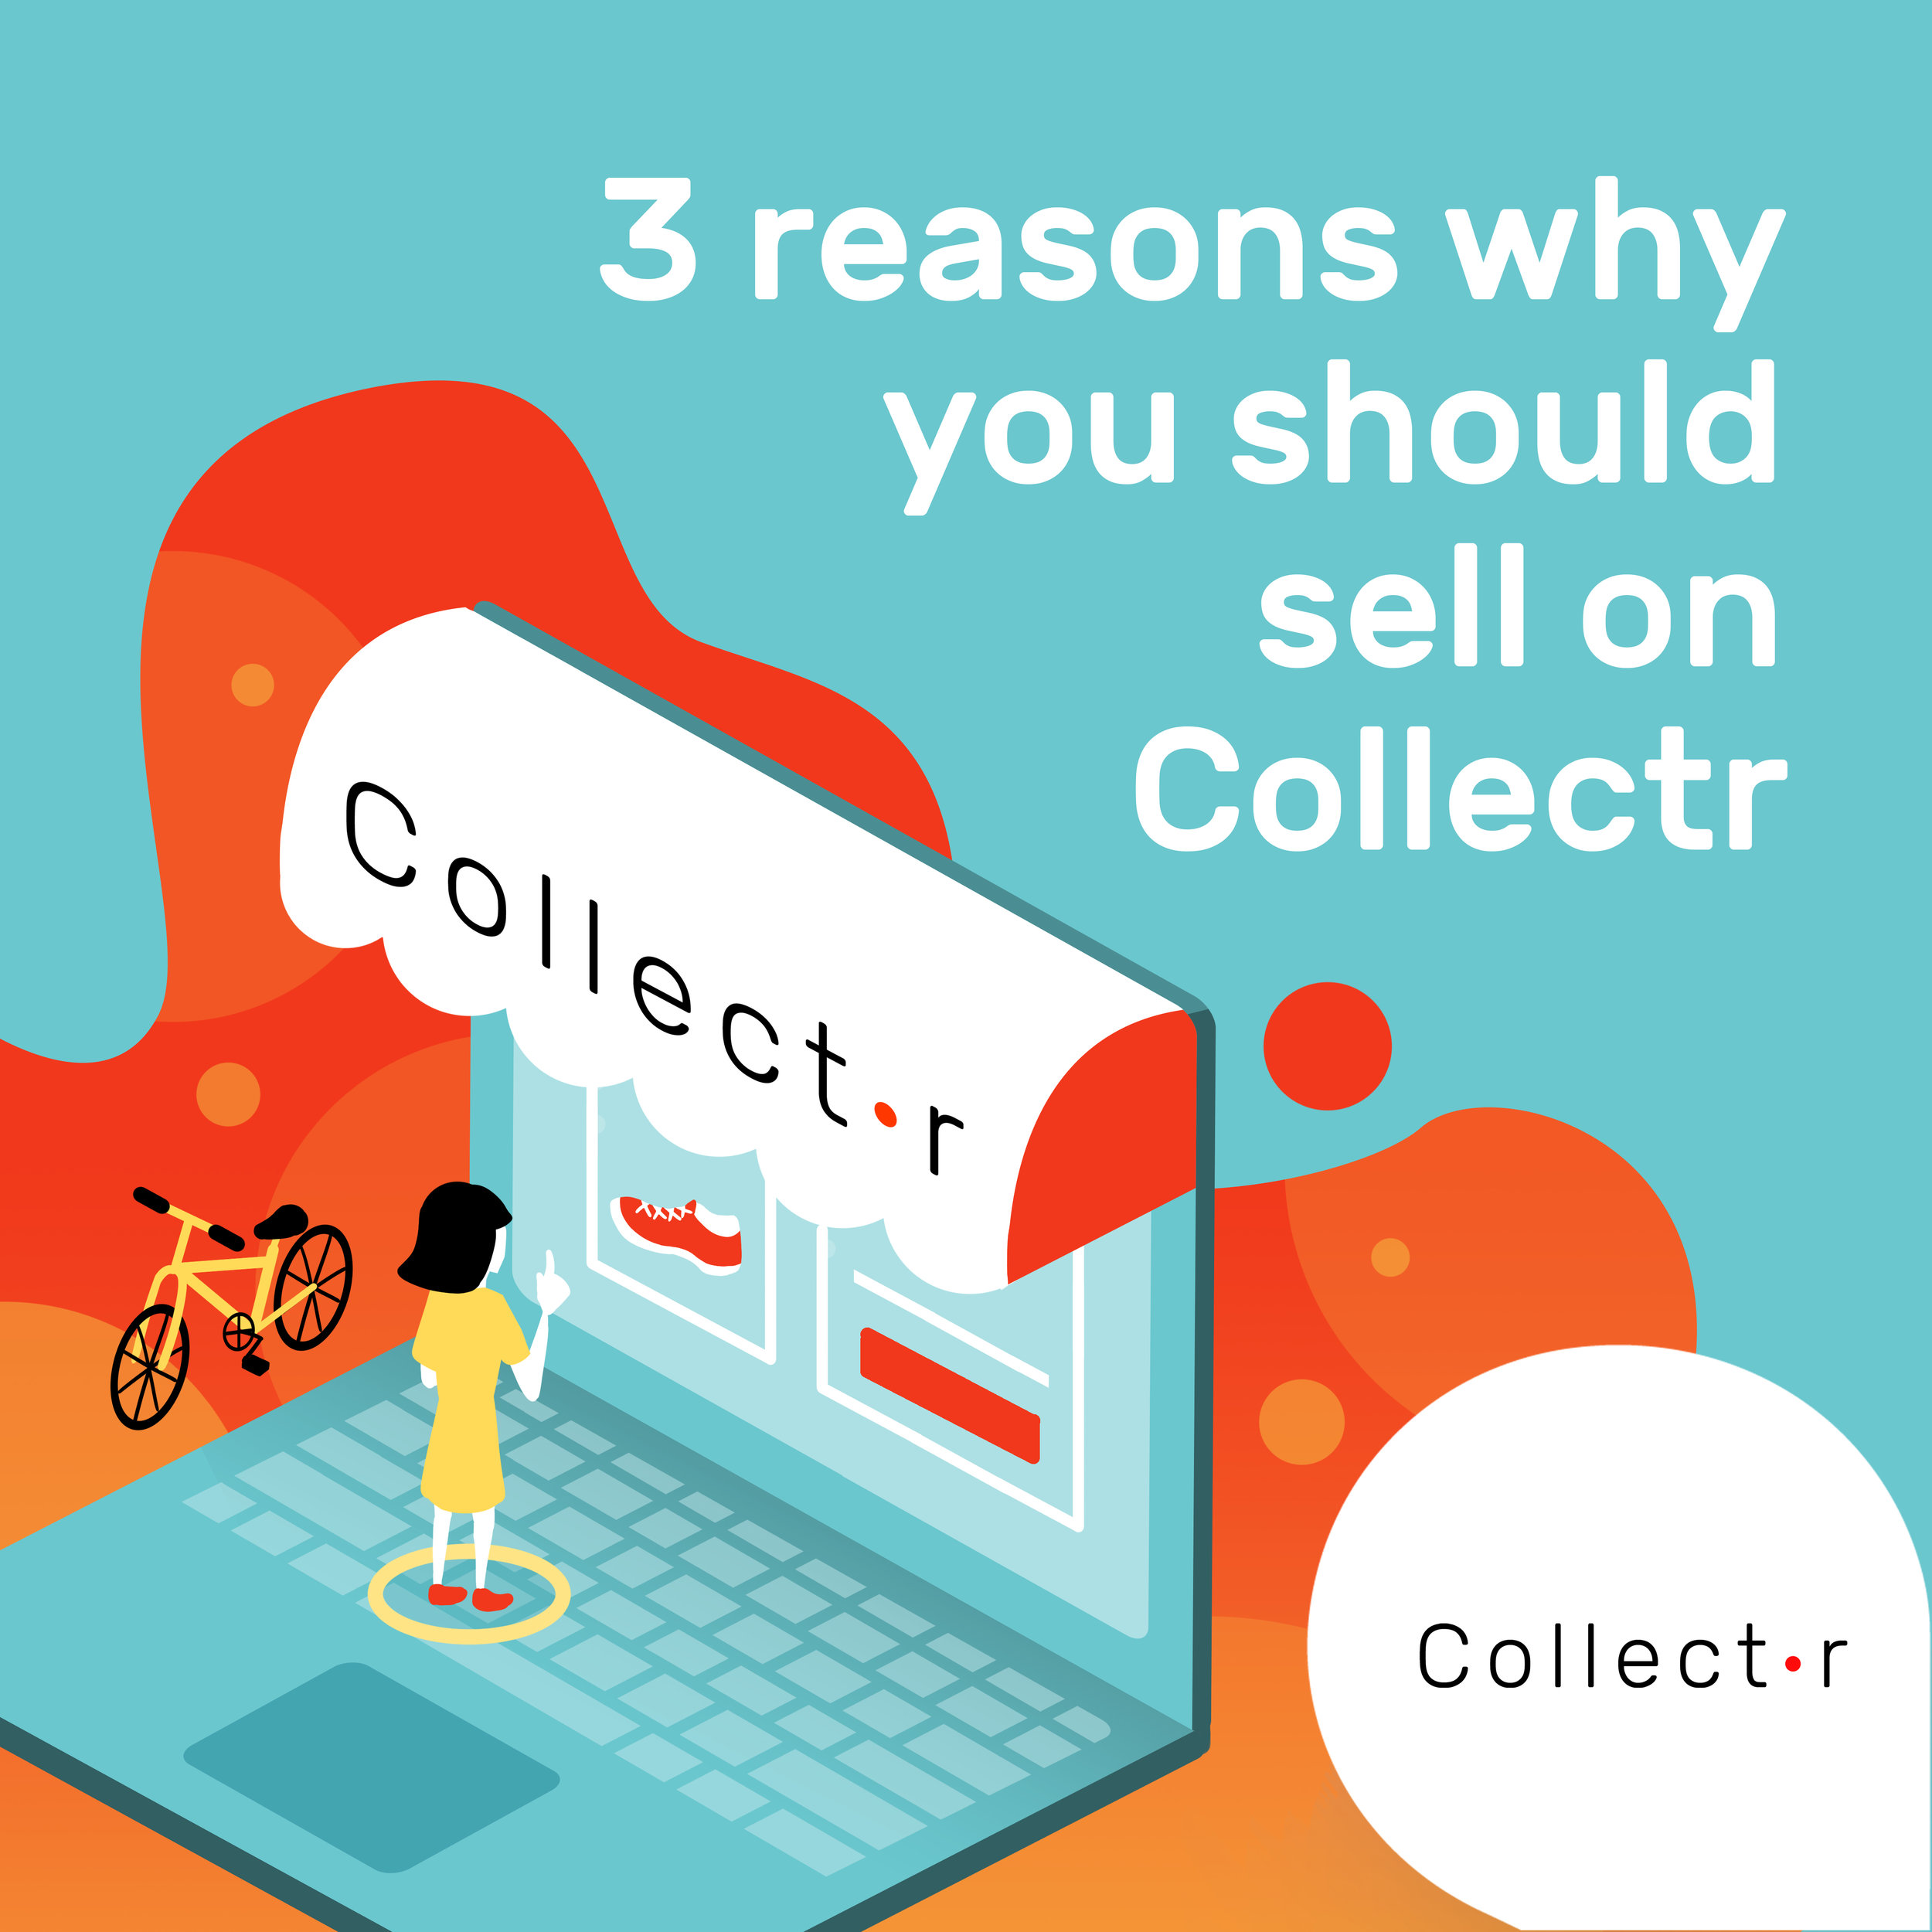 3-reasons-why-sell-on-Collectr